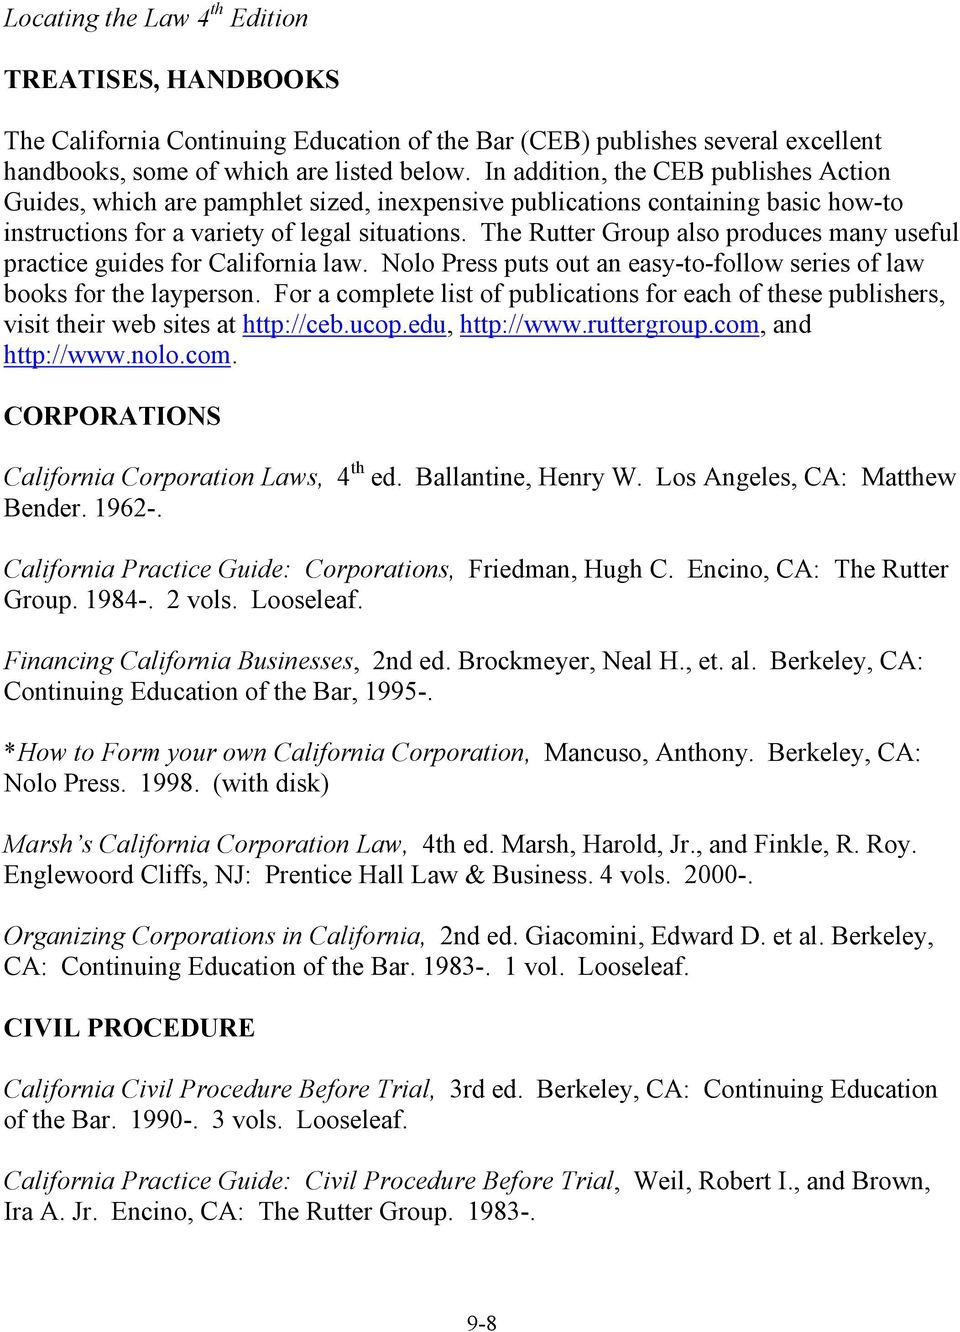 The Rutter Group also produces many useful practice guides for California law. Nolo Press puts out an easy-to-follow series of law books for the layperson.